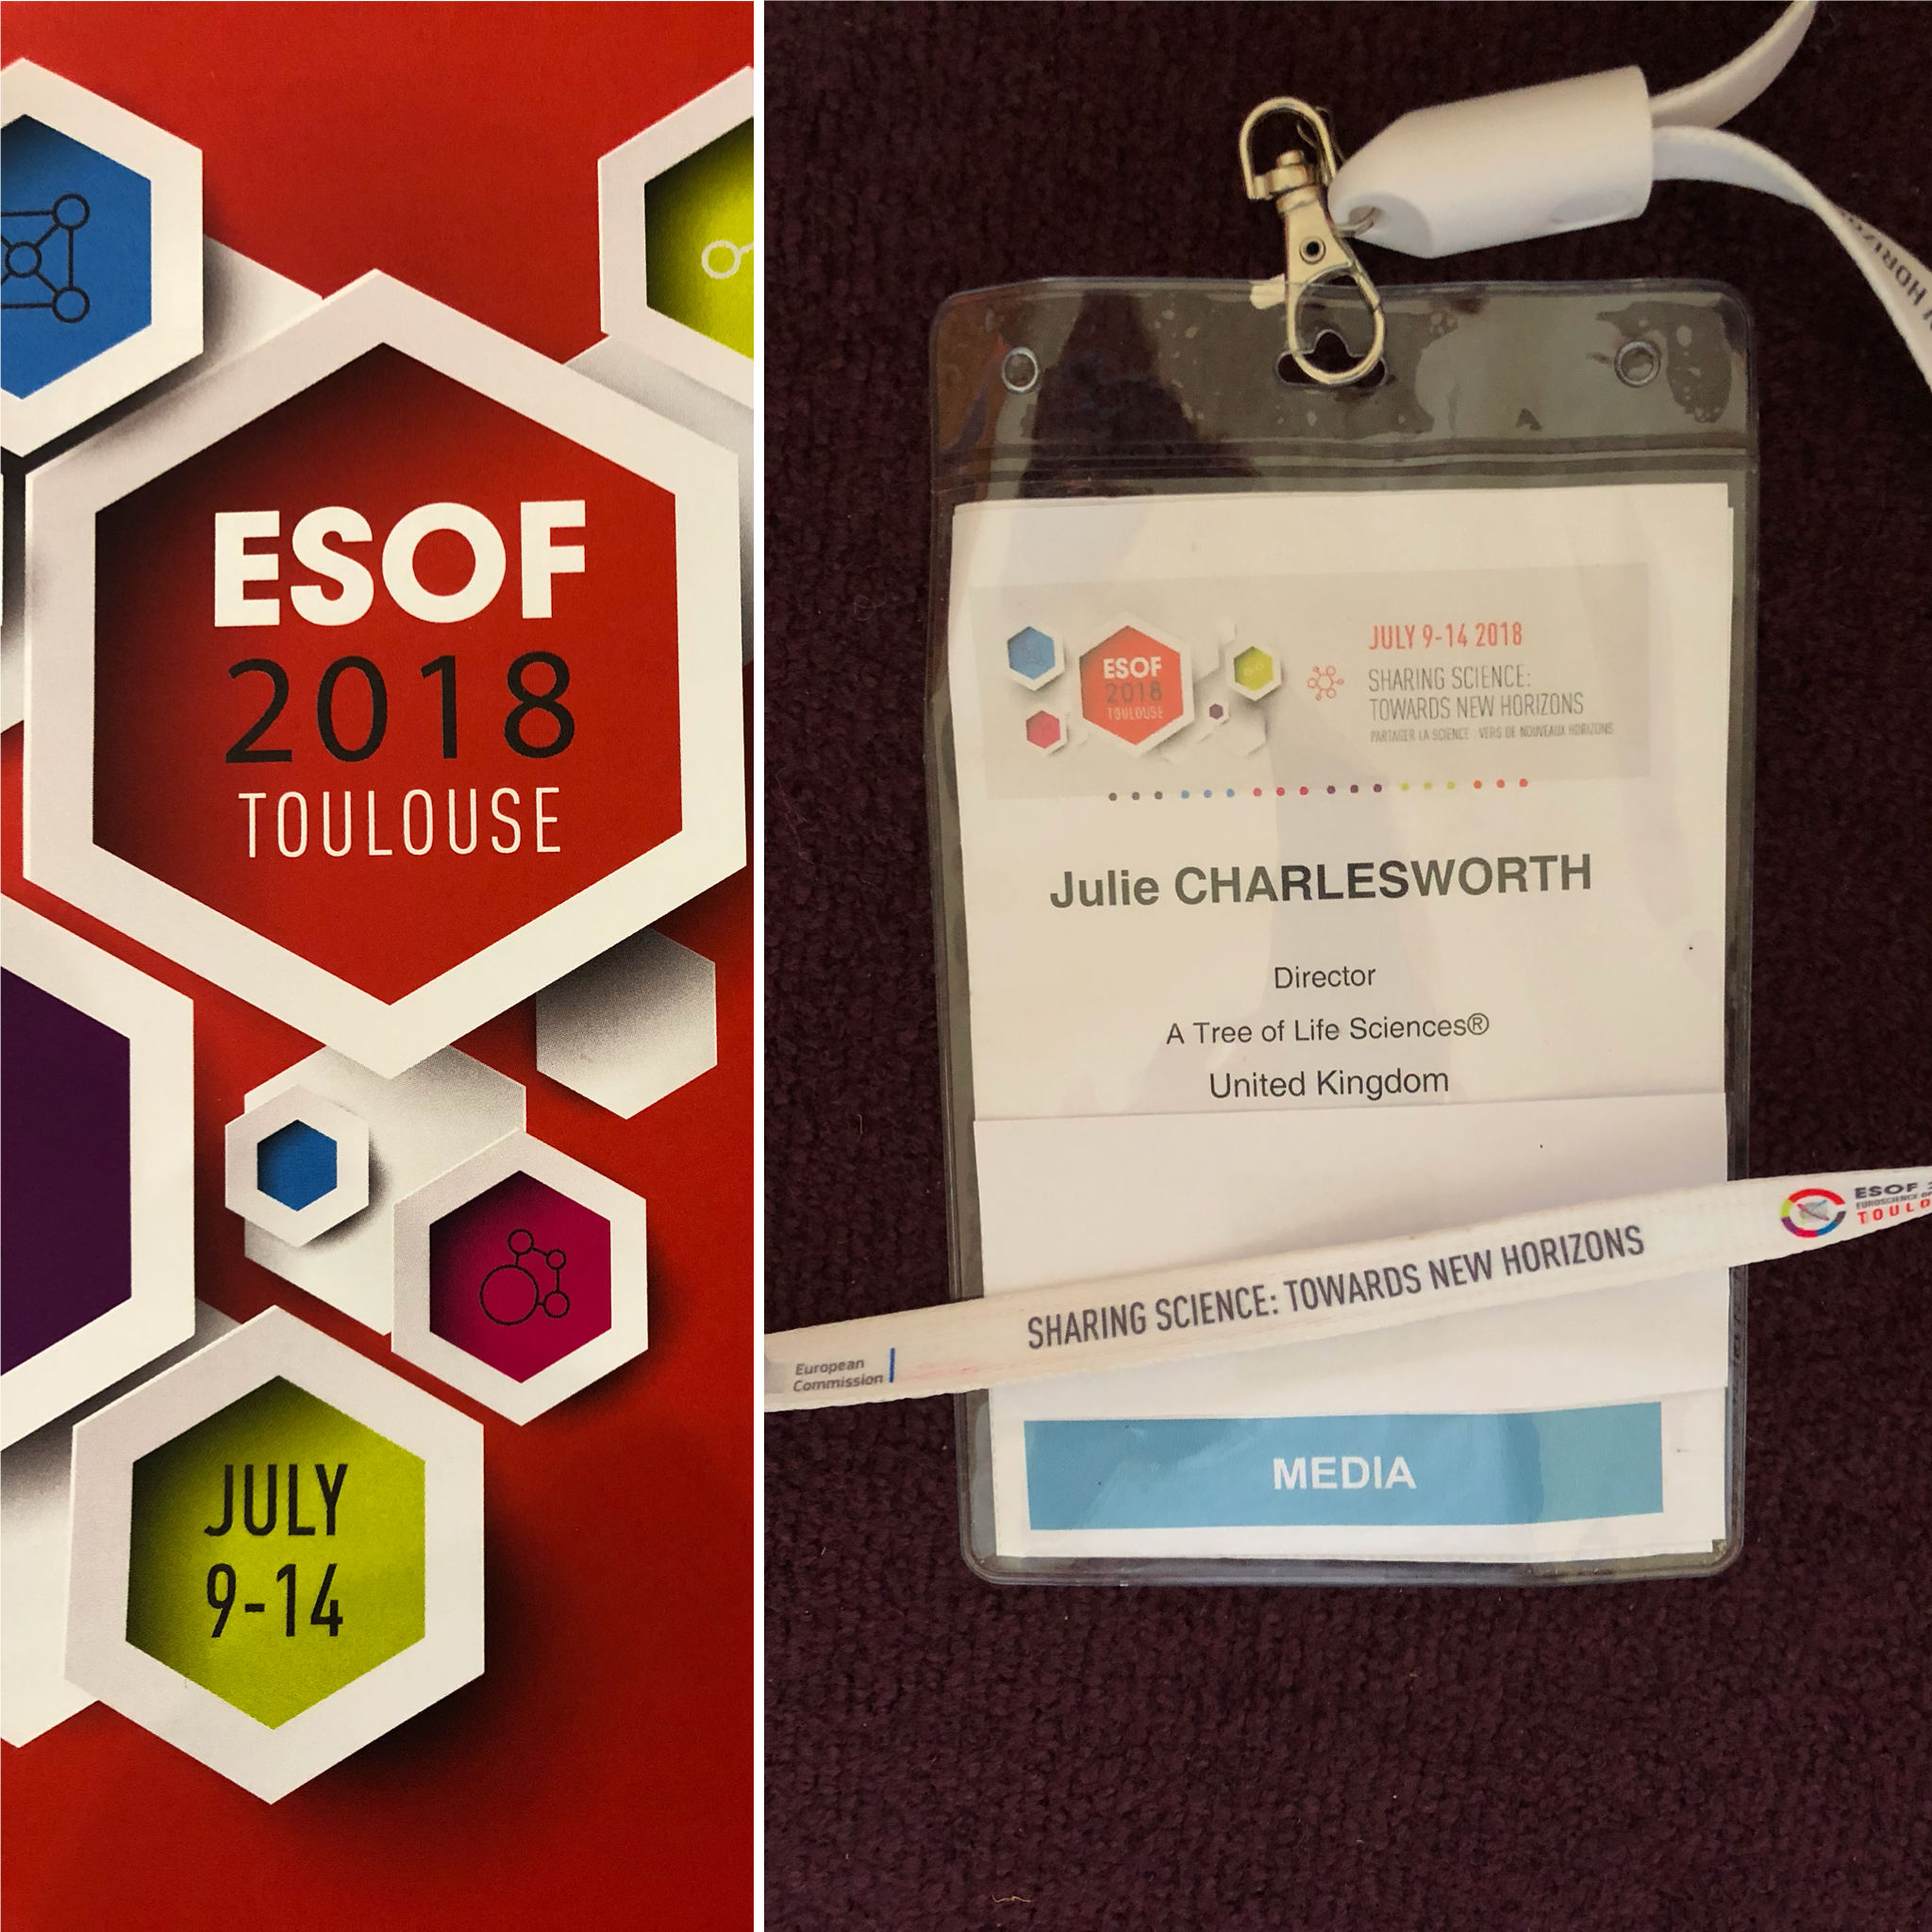 Euorpean Science Open Forum (ESOF 2018) media accreditation